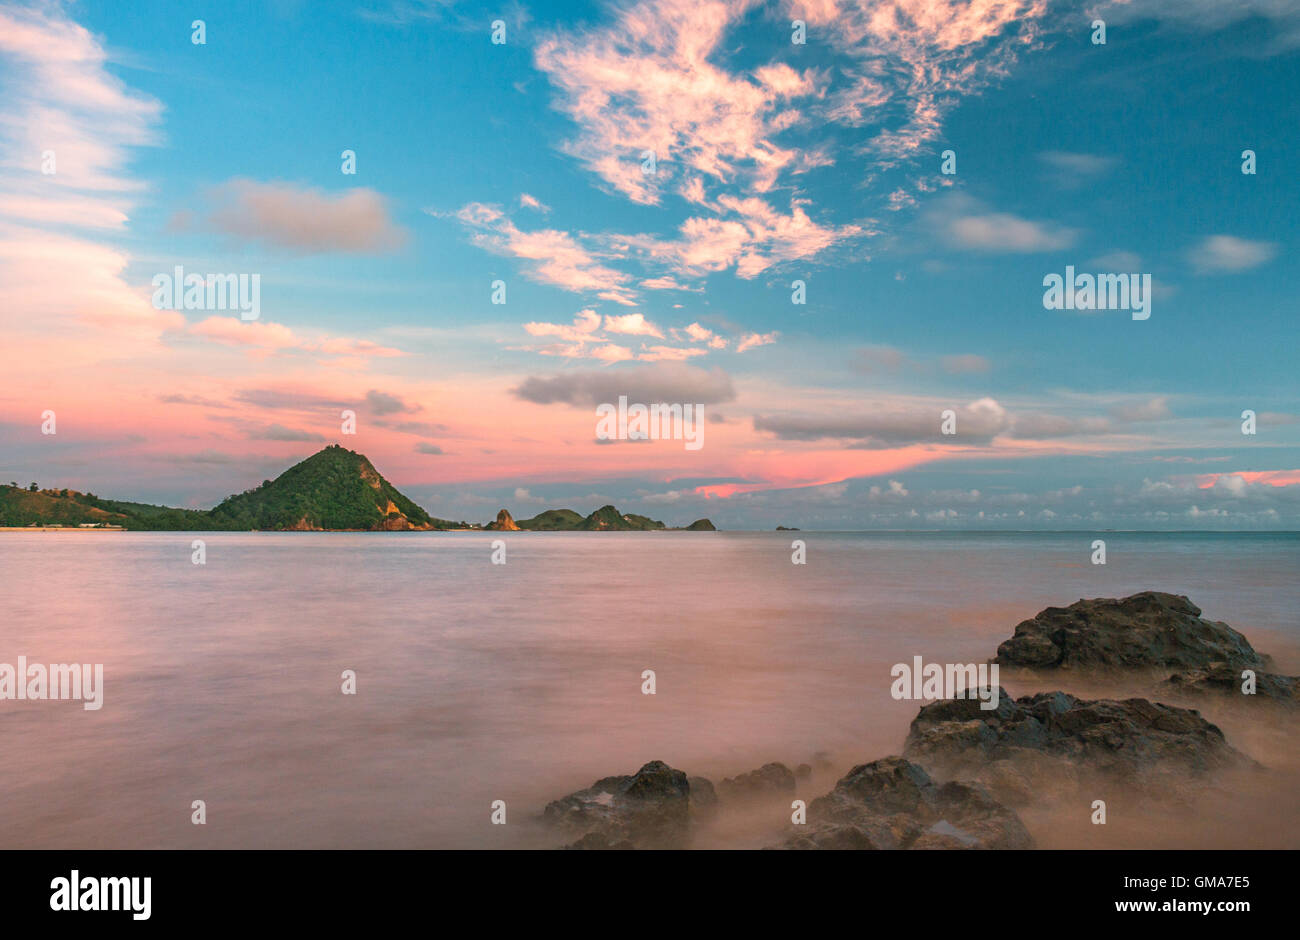 A long exposure of the still ocean and rocks, with a beautiful sky at sunset. - Stock Image